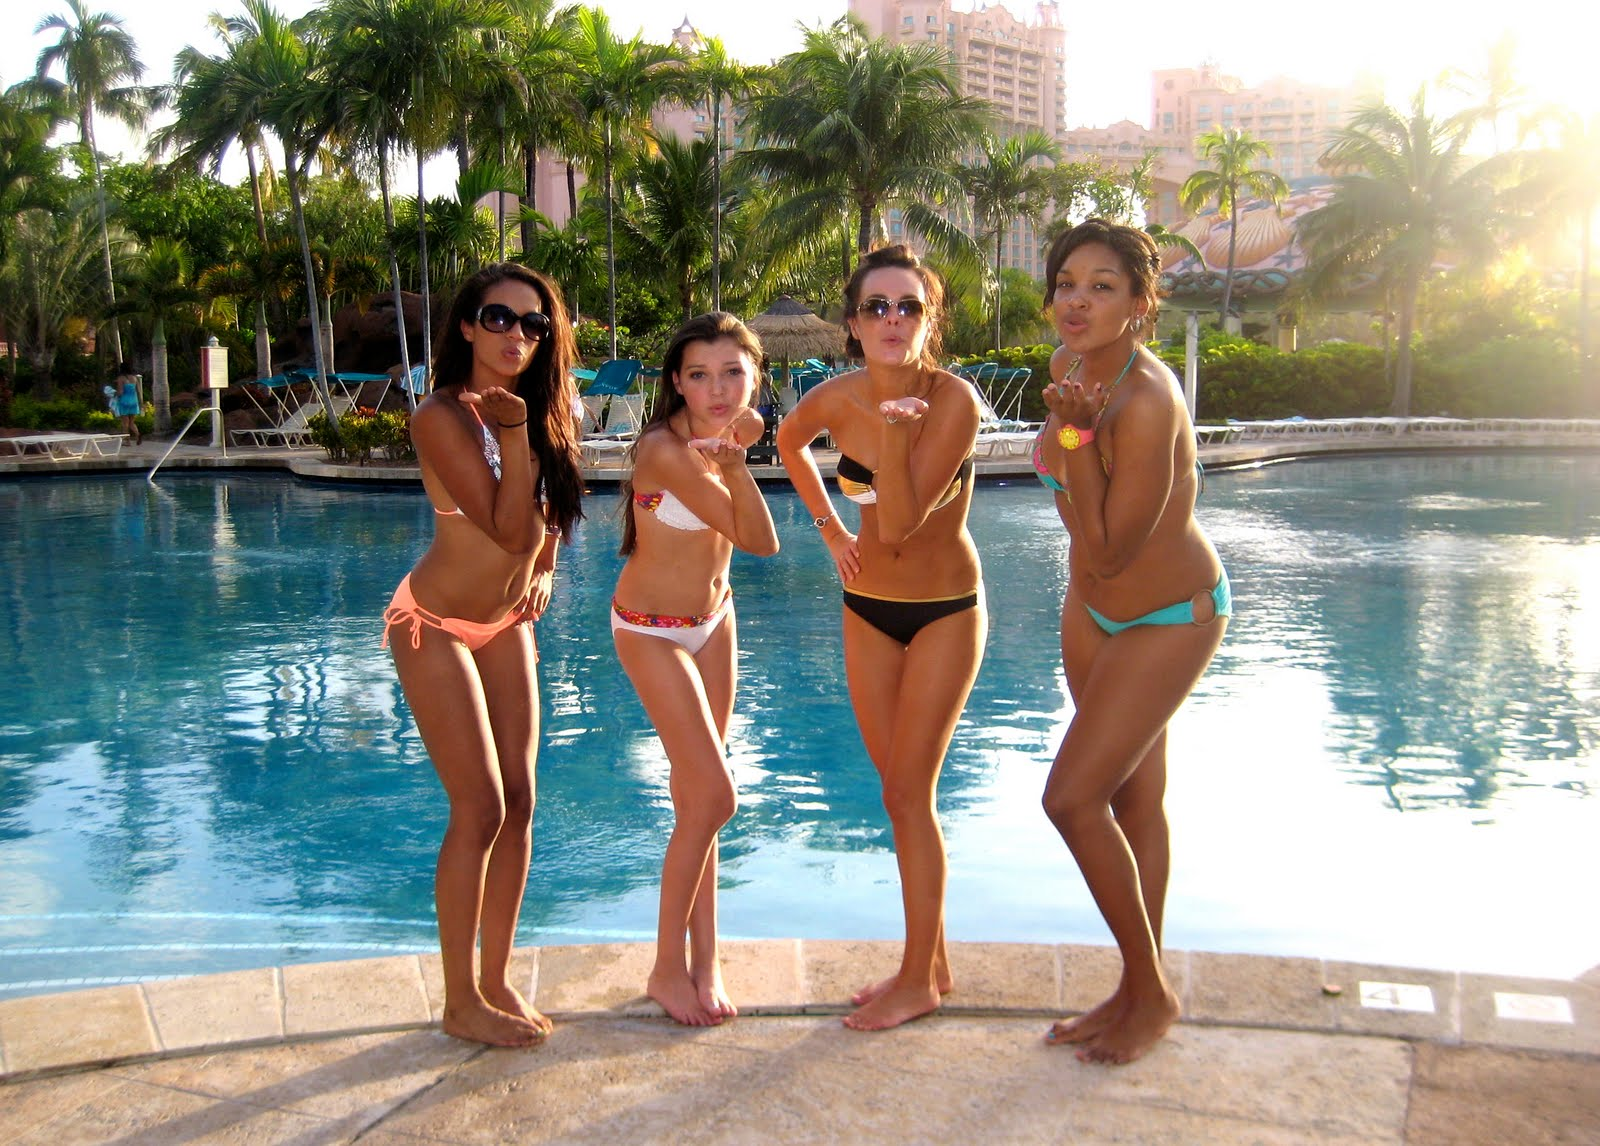 key colony beach milf personals Key colony beach's best 100% free milfs dating site meet thousands of single milfs in key colony beach with mingle2's free personal ads and chat rooms our network of milfs women in key.